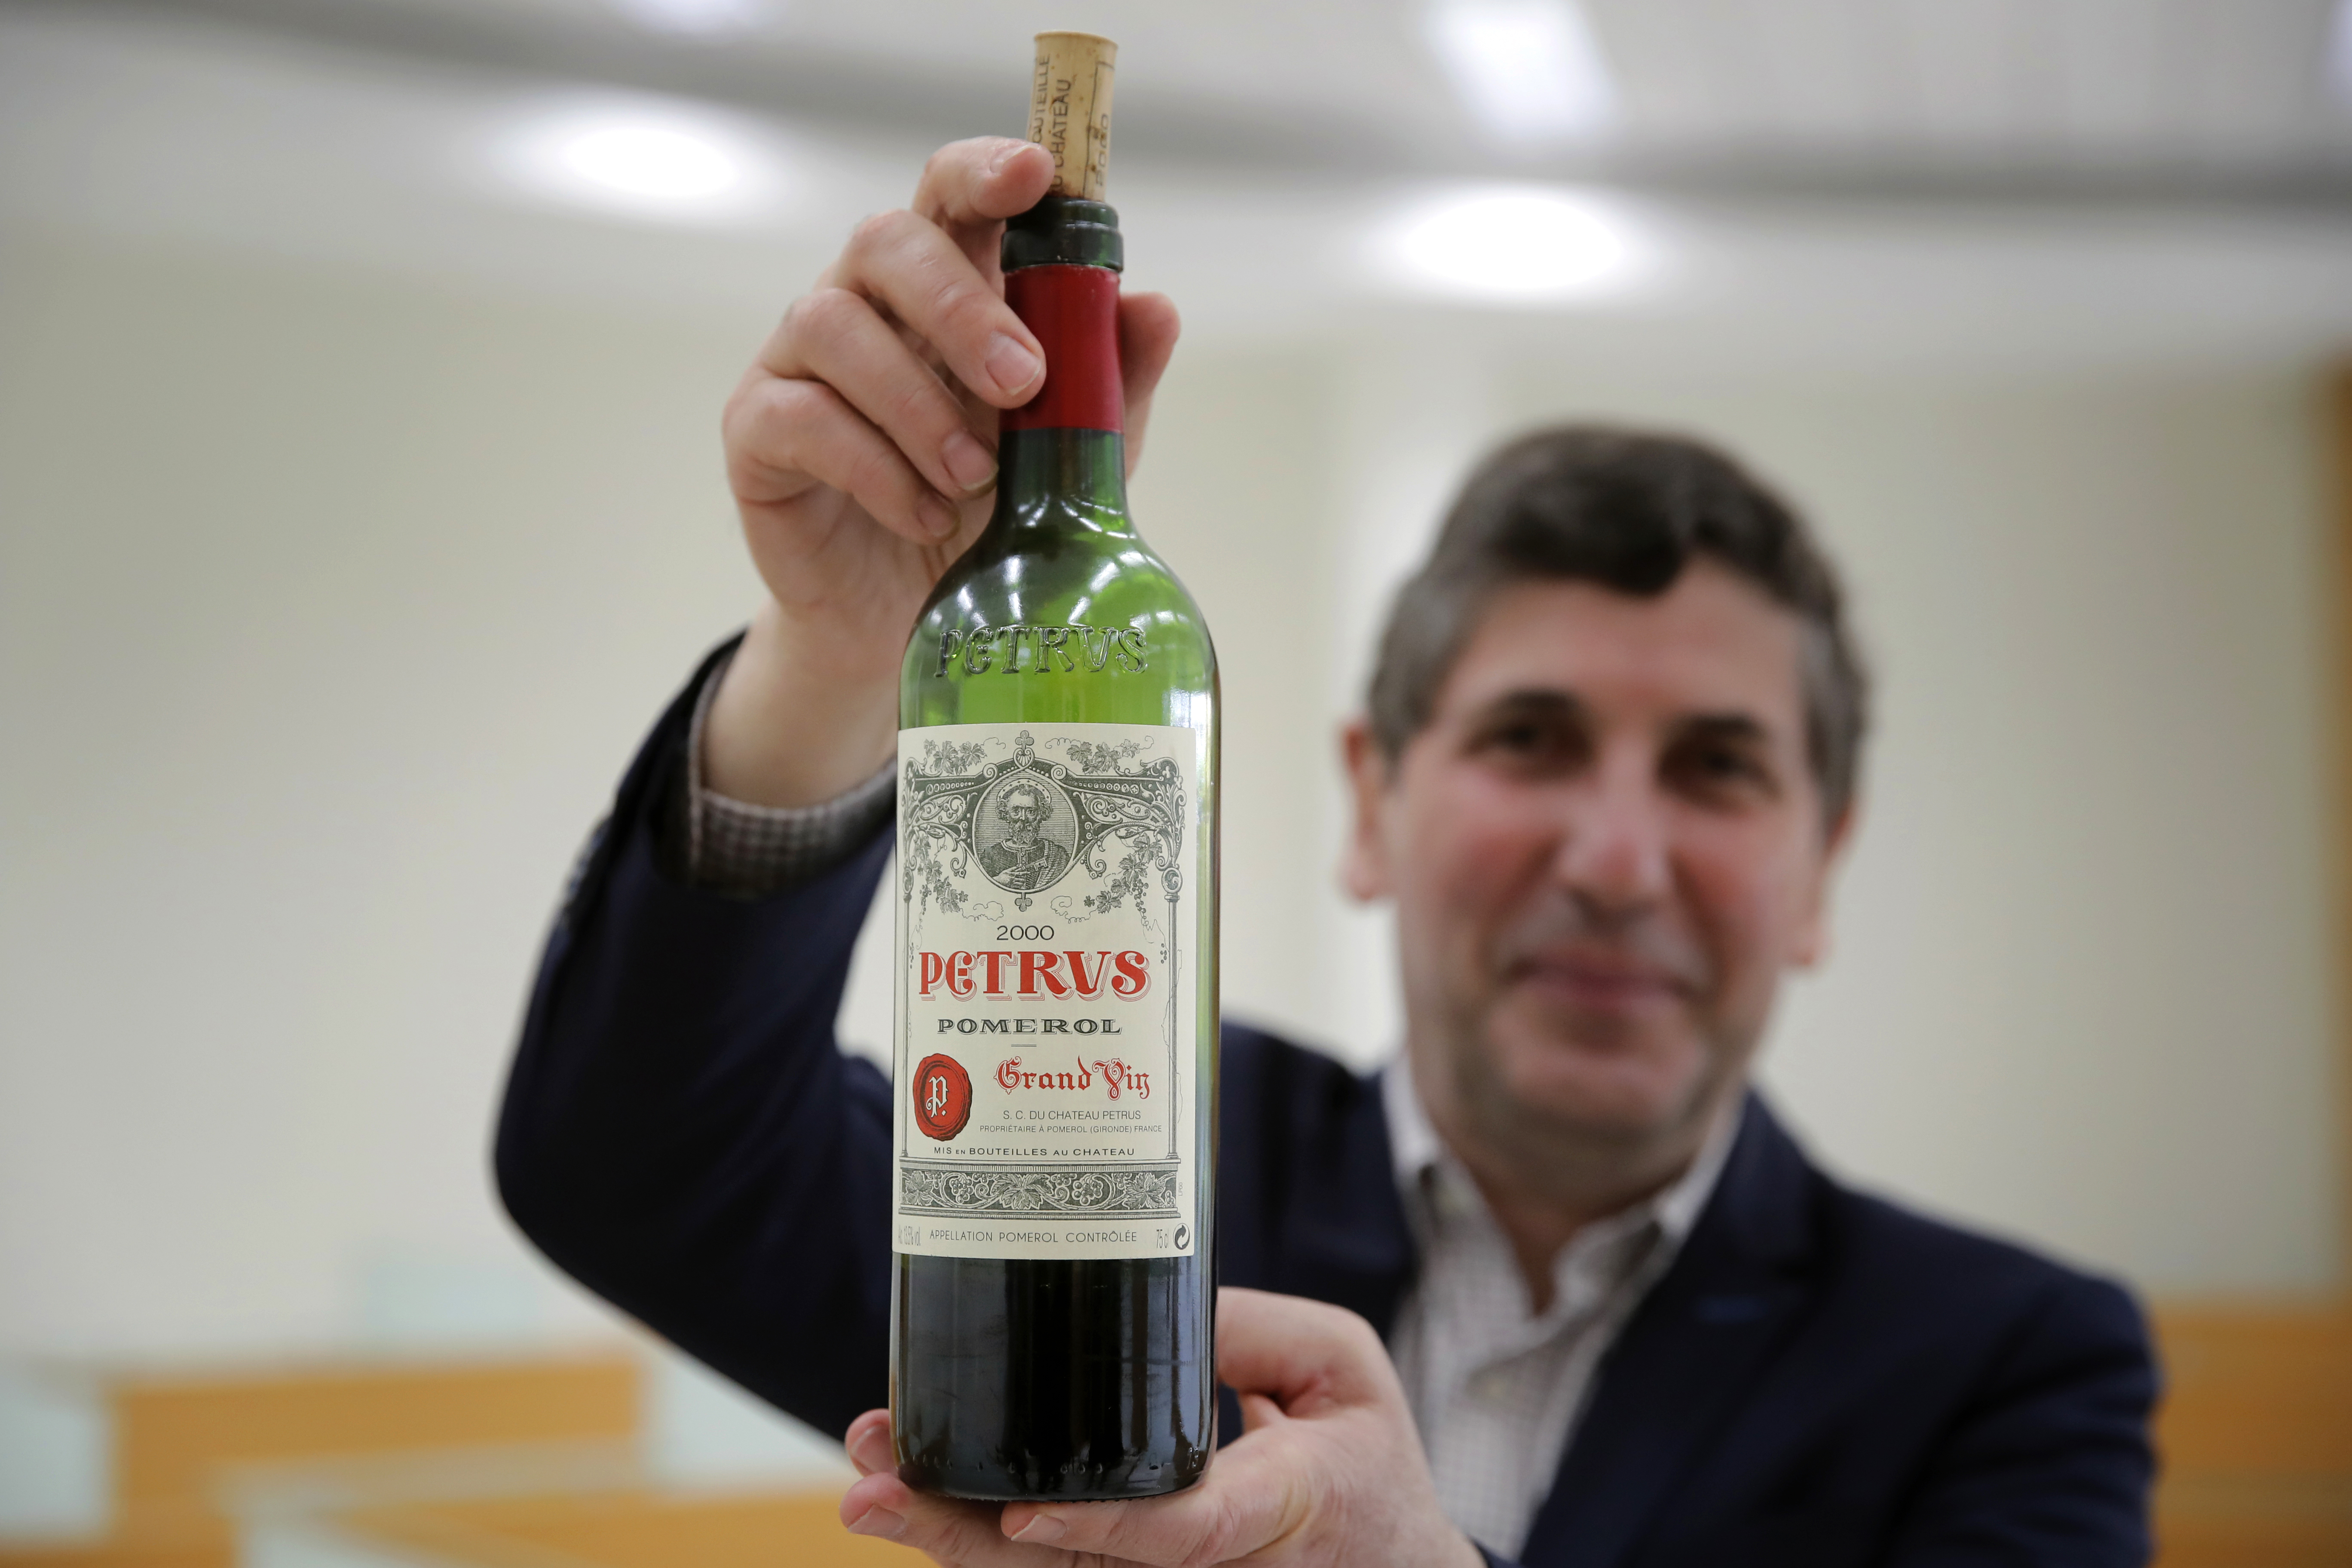 Philippe Darriet, president of the Institute for Wine and Vine Research (ISVV) and chief oenologist holds a bottle of Petrus red wine that spent a year orbiting the world in the International Space Station after a tasting session at the ISVV in Villenave-d'Ornon, southwestern France on March 1, 2021.